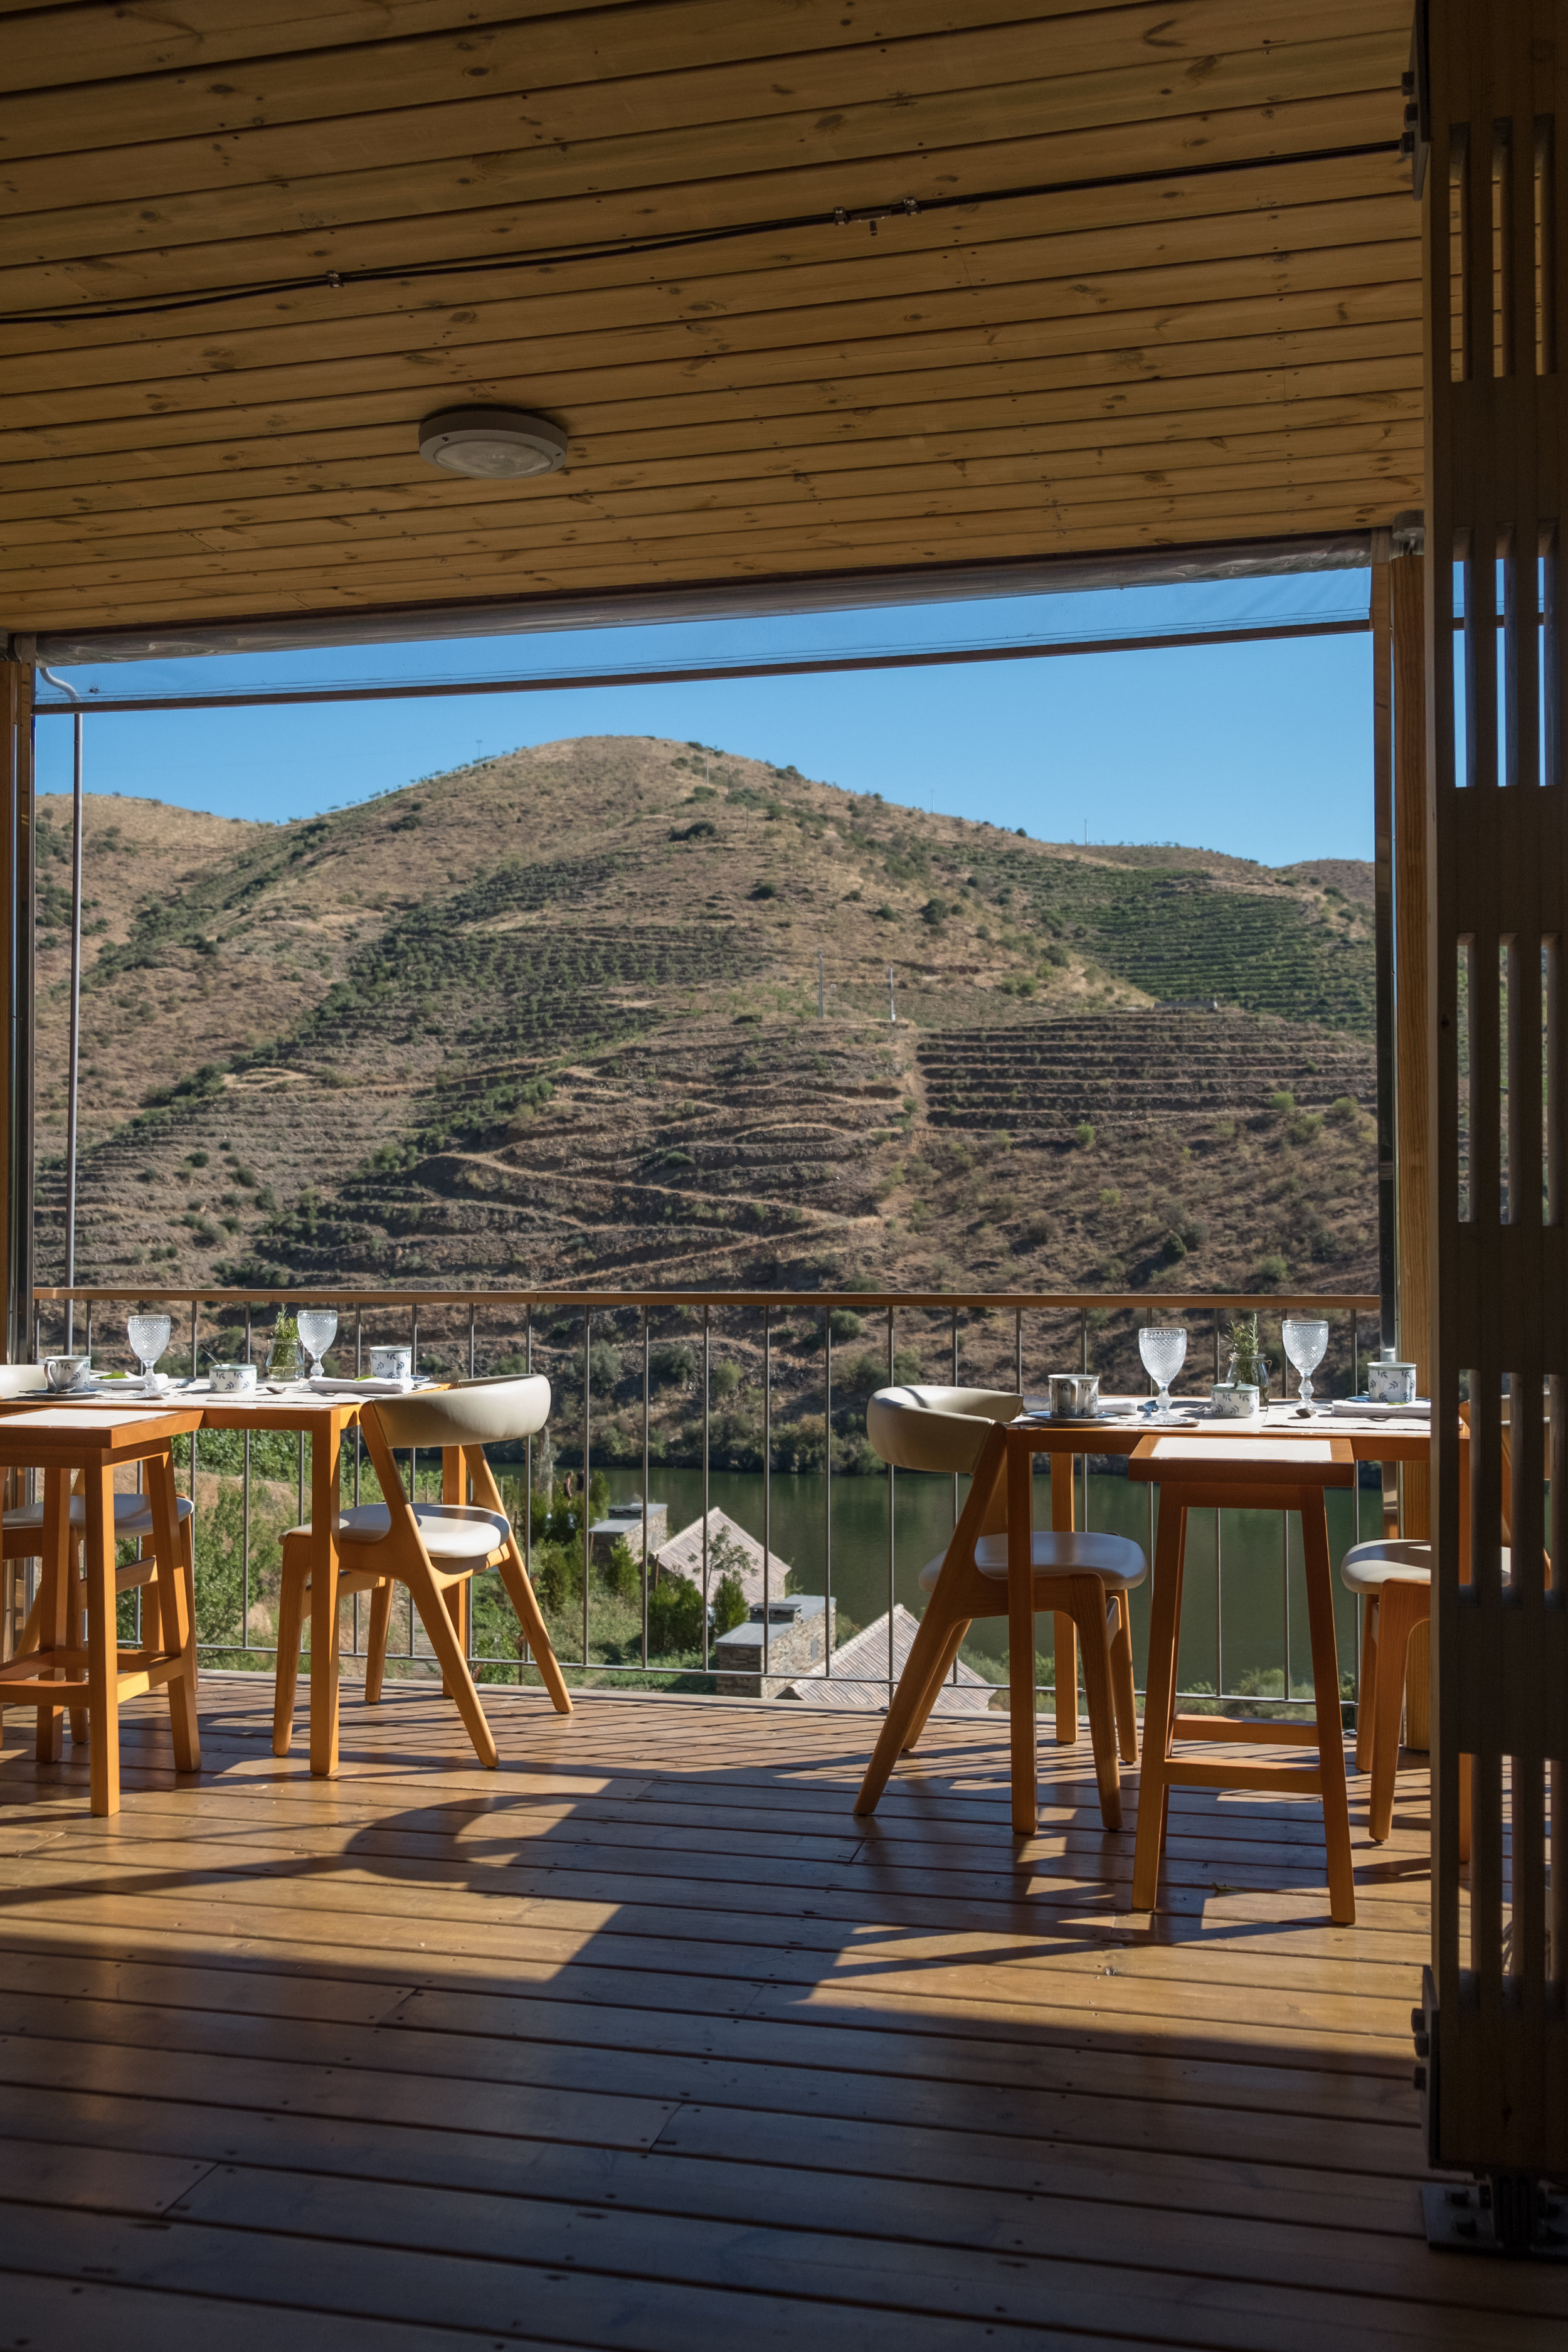 Casa do Rio: A Resting Stop in the Upper Douro's Diversified Landscape on Perfect Local Day by UNCOVR Travel